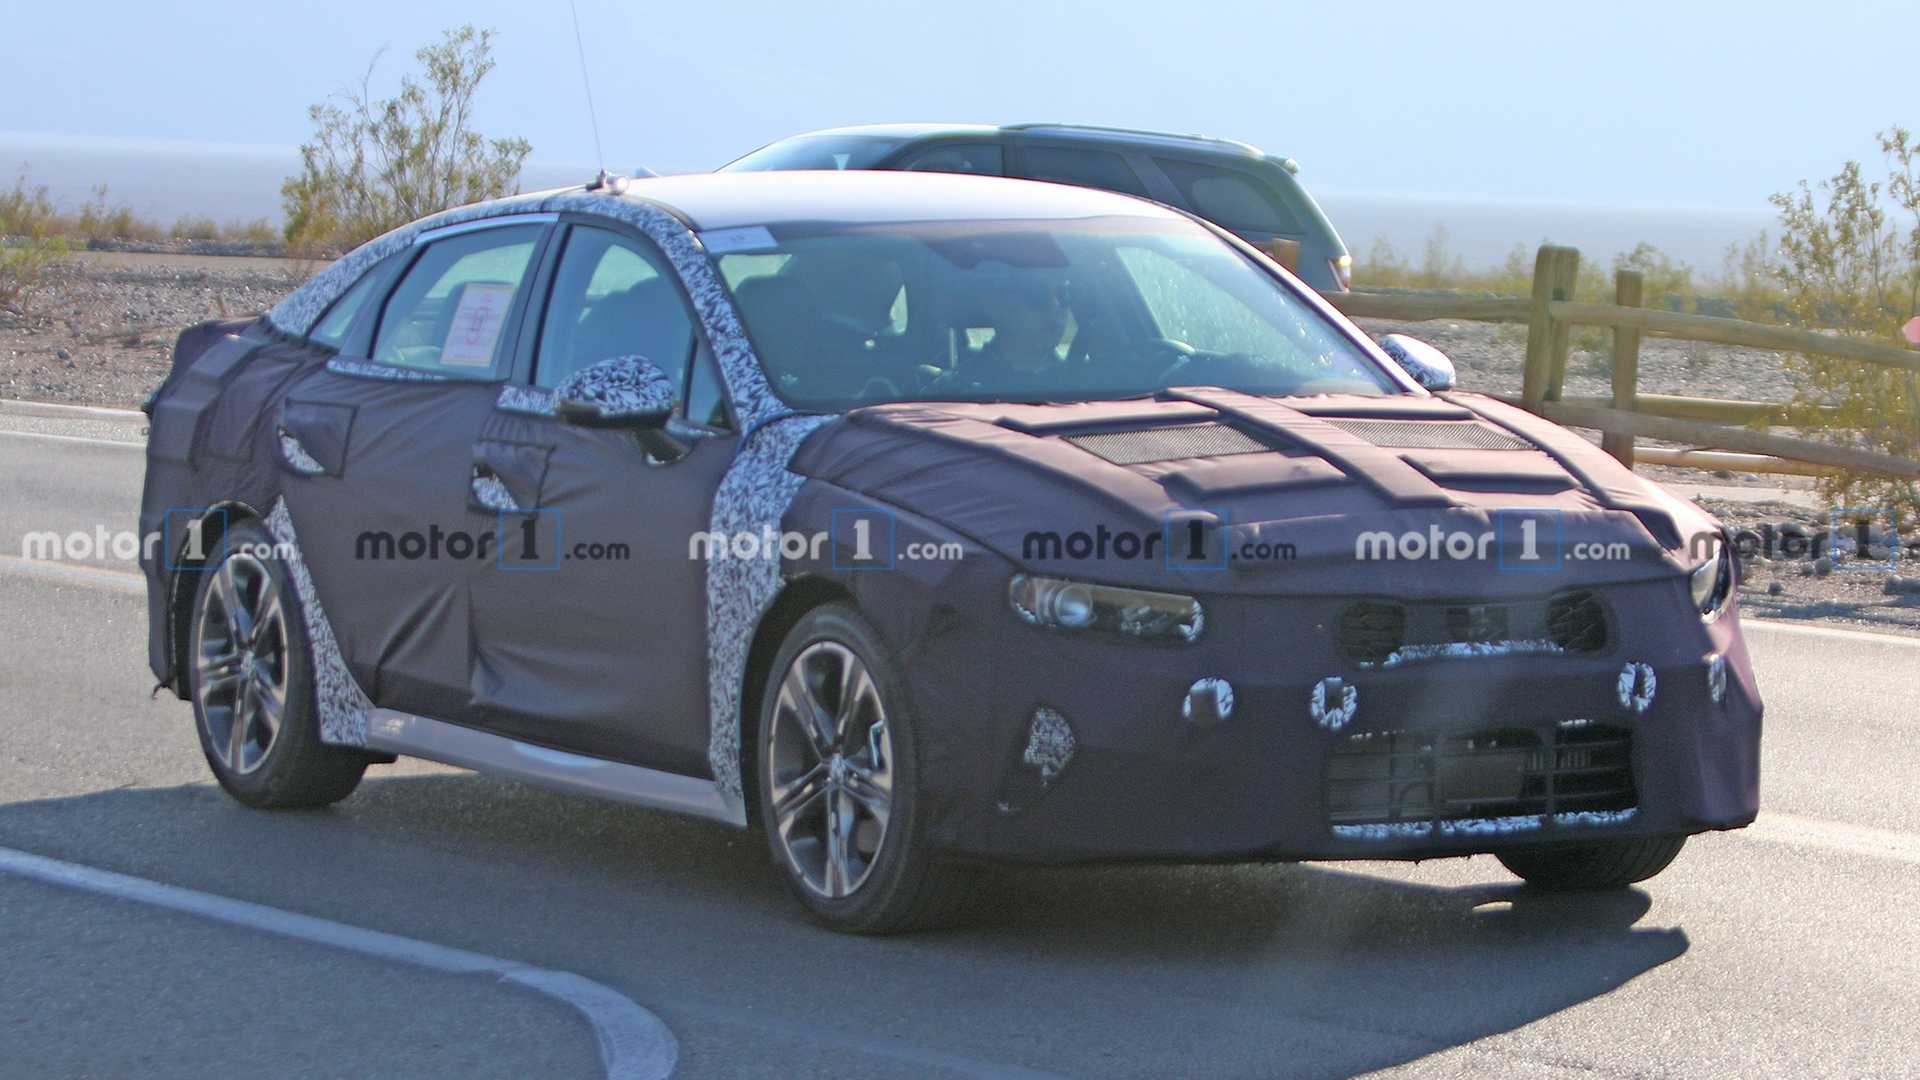 2021 Kia Optima Spied For First Time Testing In Death Valley - 2022 Kia Optima Usa Configuration Update, Interior Feature